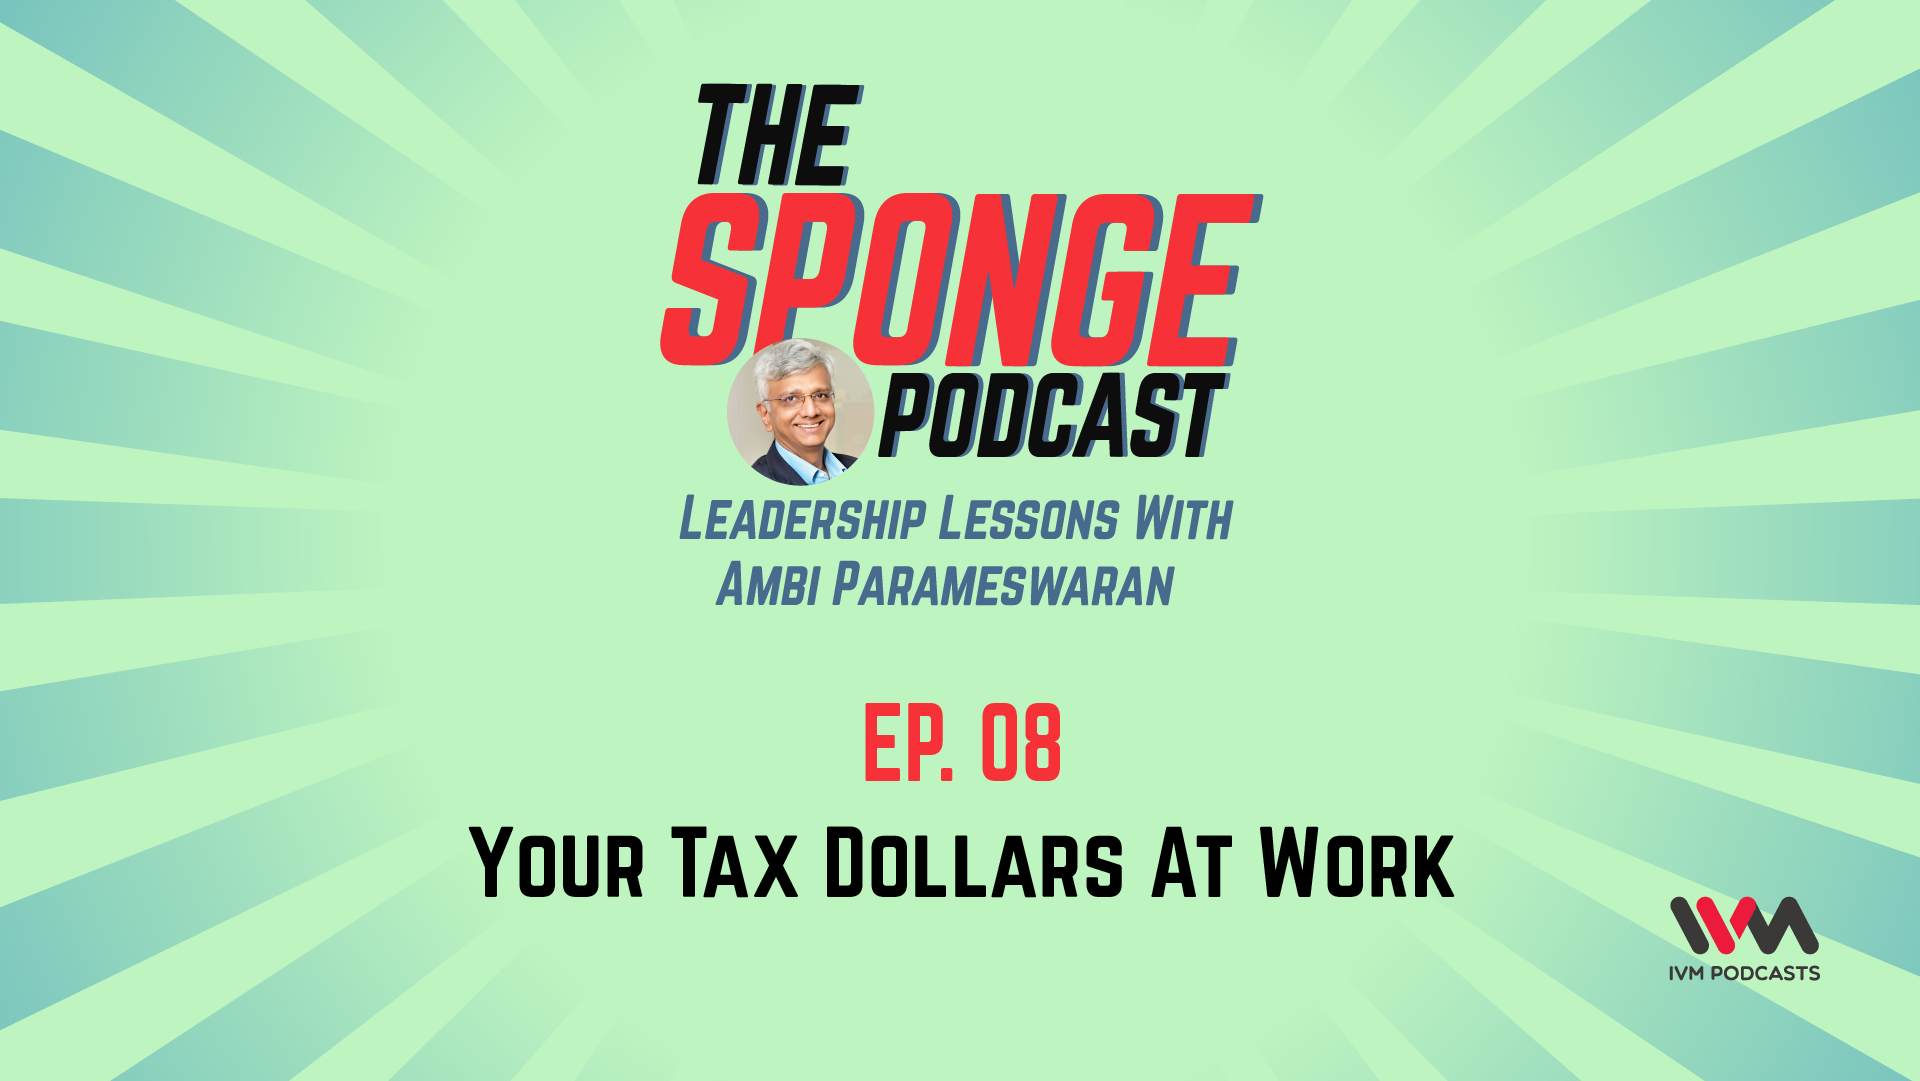 TheSpongePodcastEpisode08.png